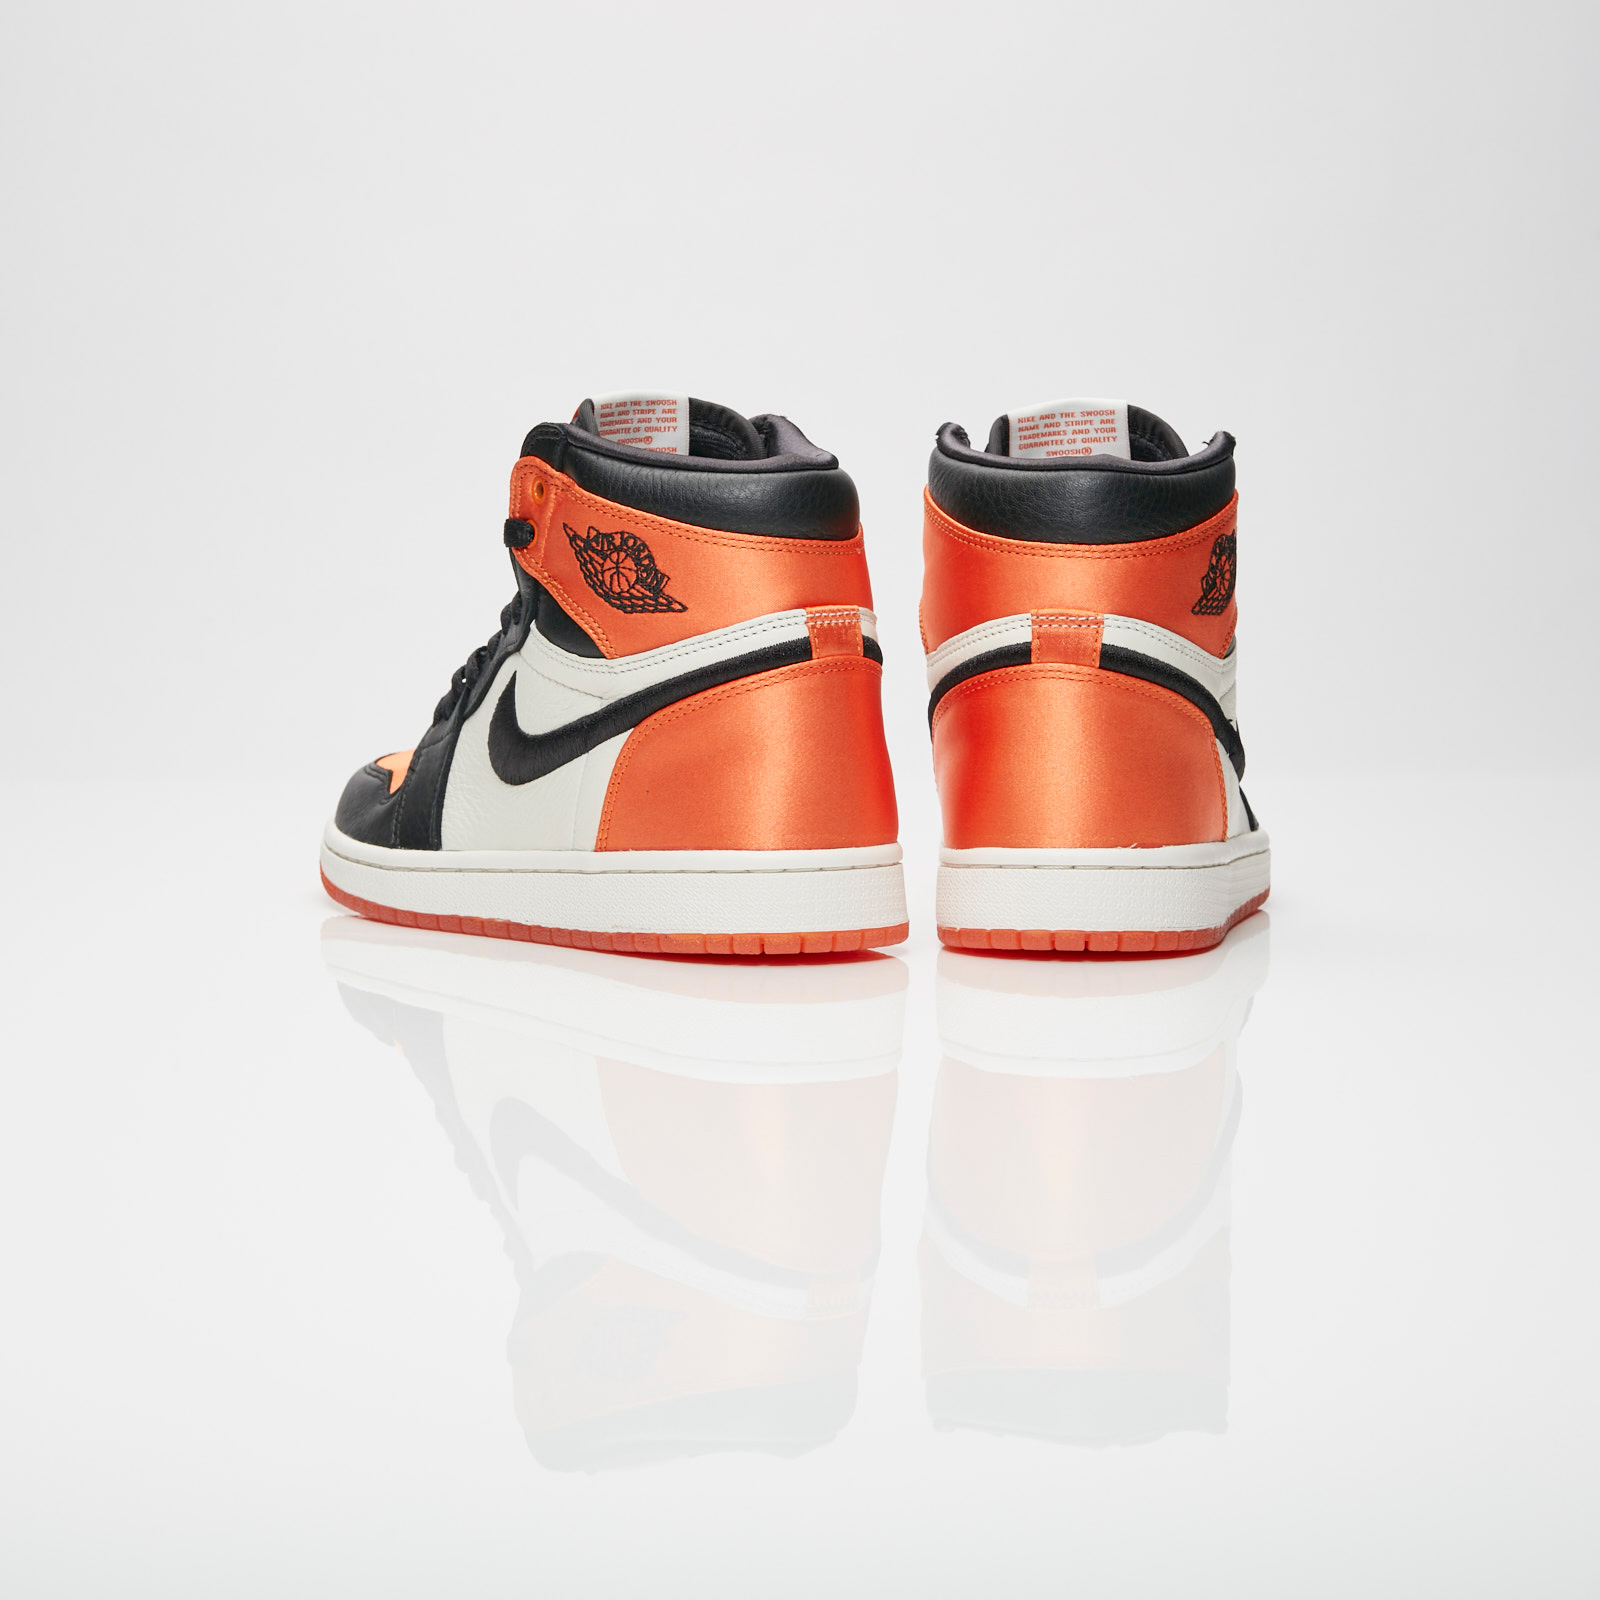 Jordan Brand Wmns Air Jordan 1 Retro High OG SL Av3725 010